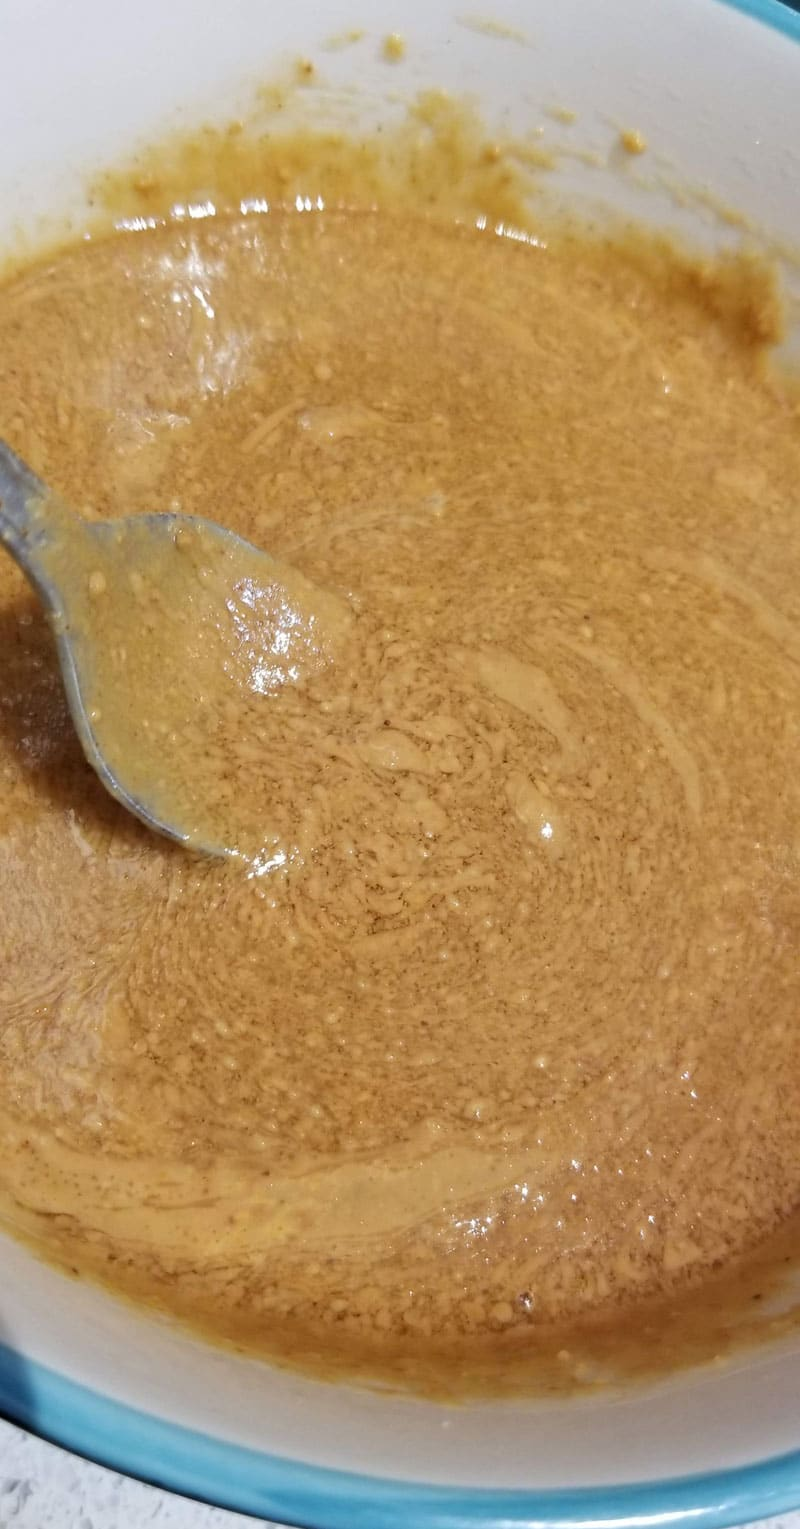 peanut butter and maple syrup mixed